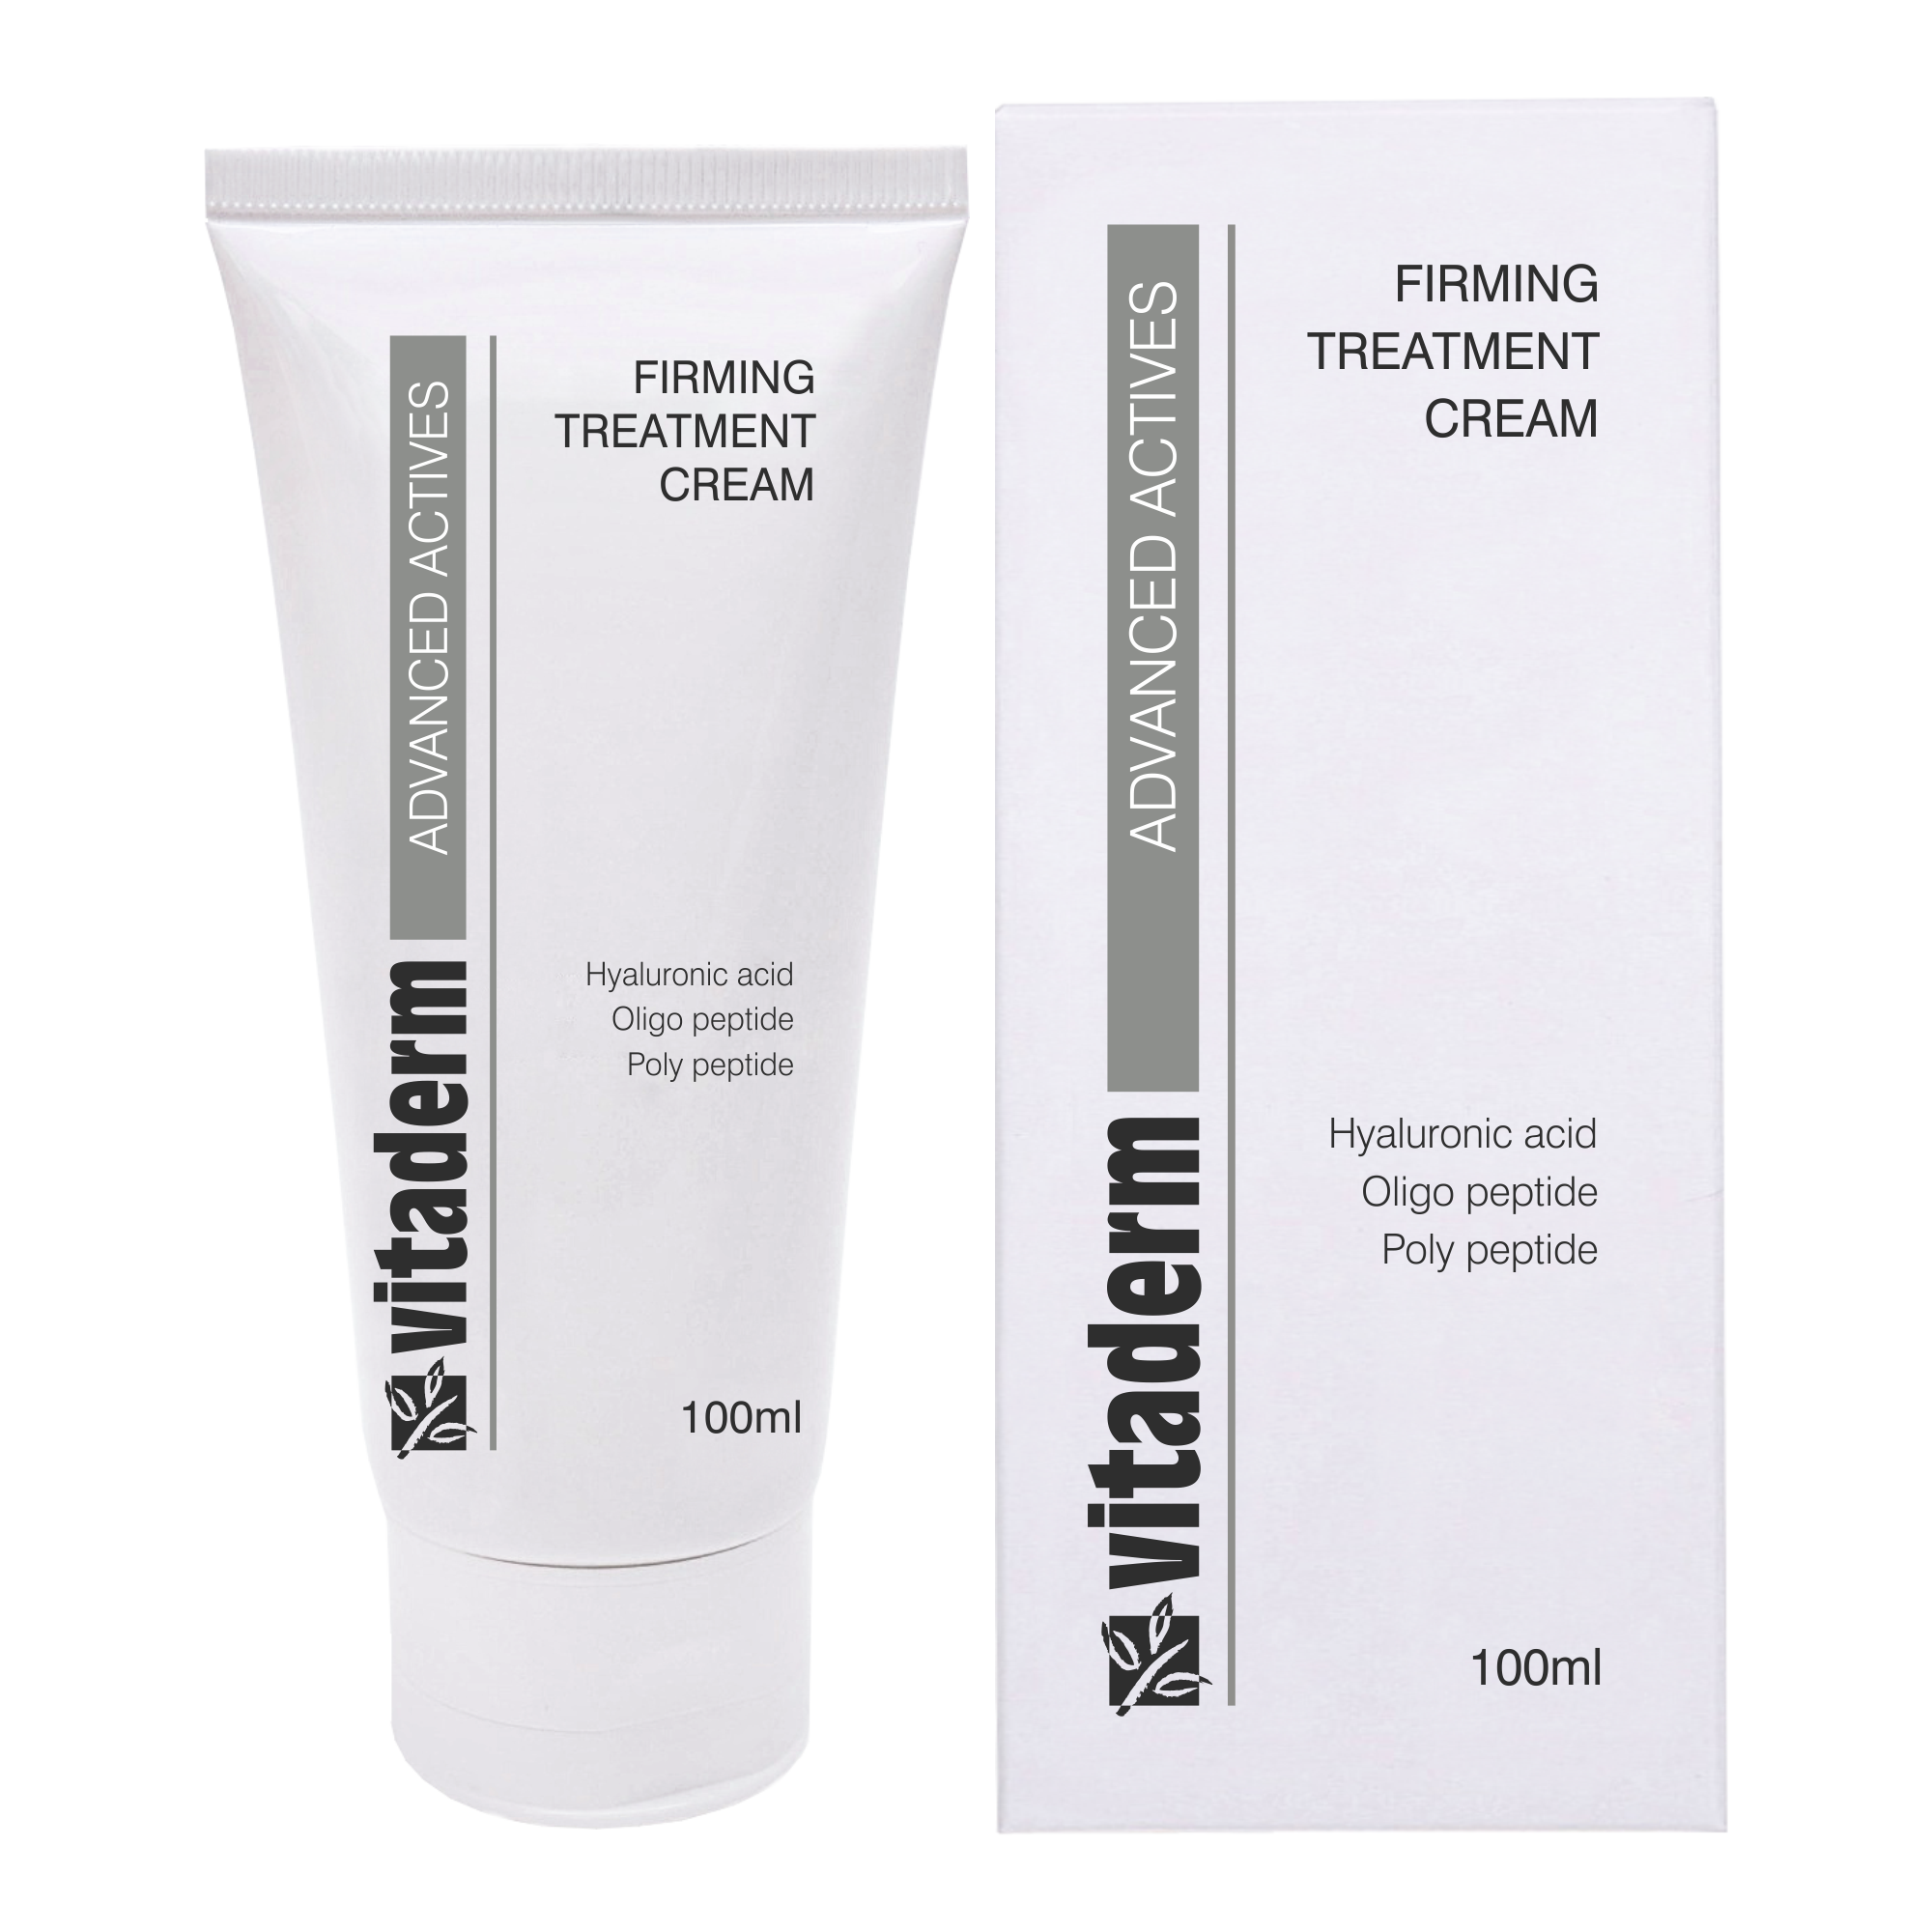 Vitaderm Firming Treatment Cream